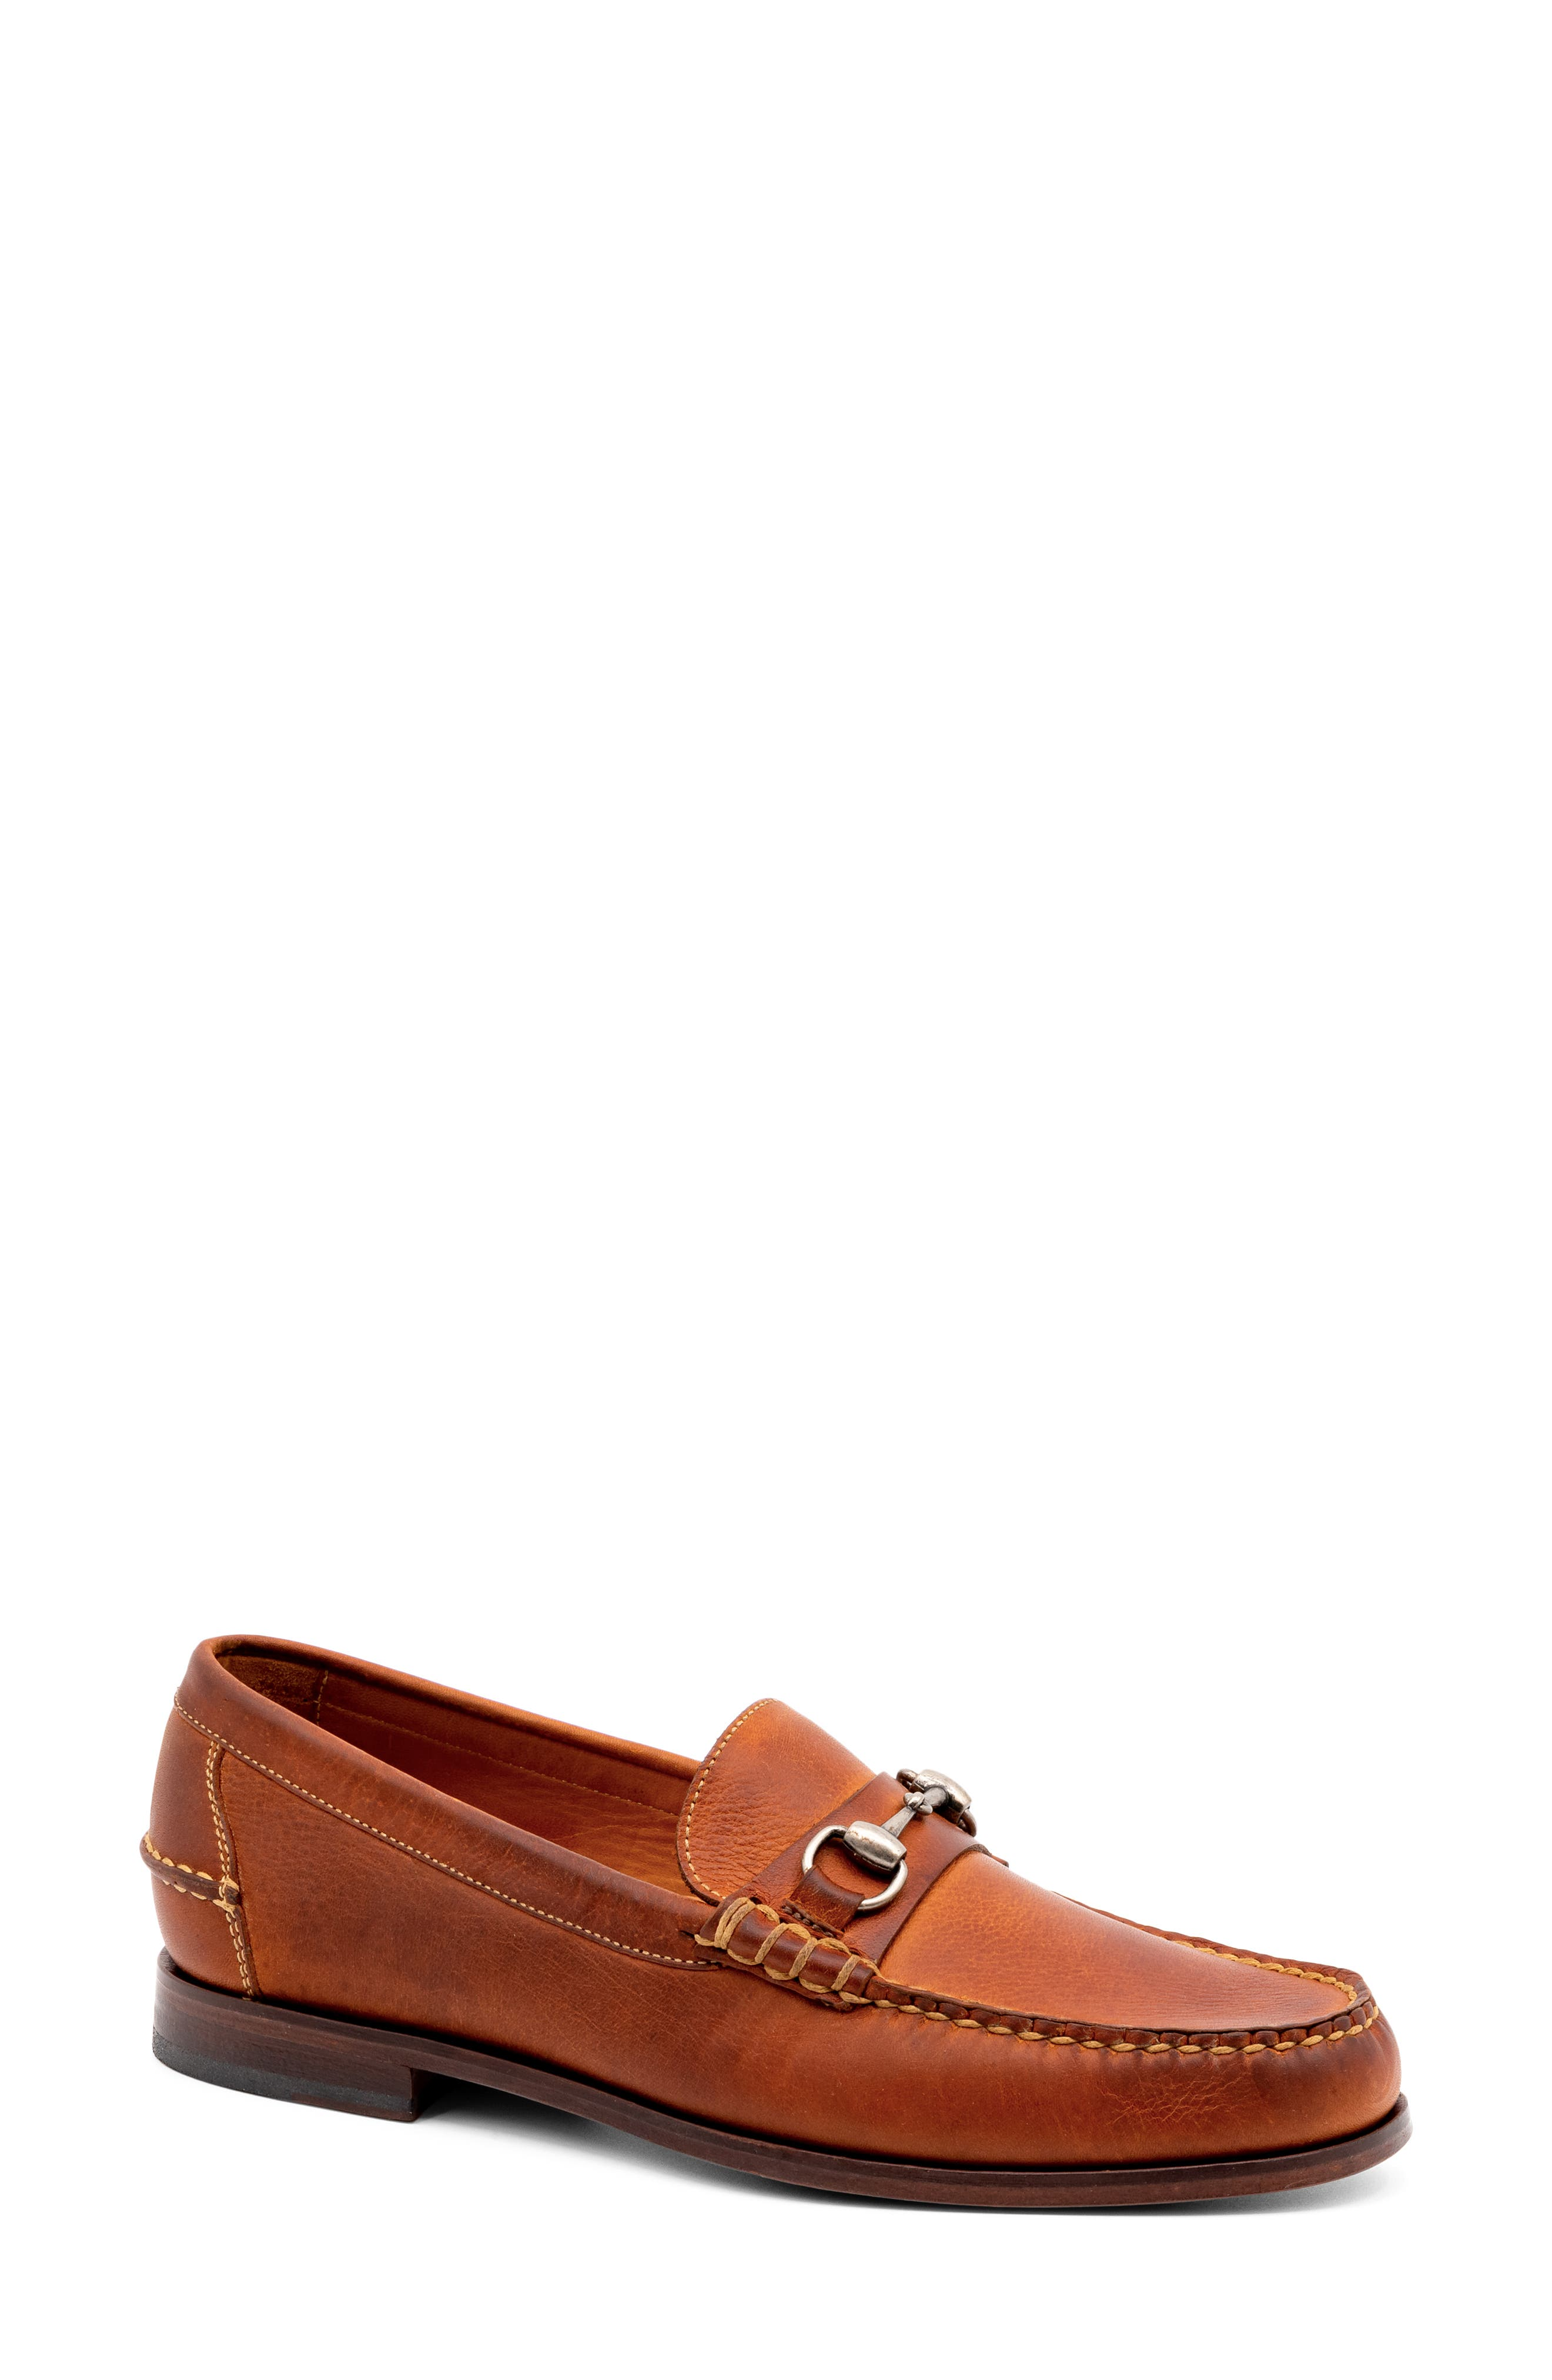 All American Bit Loafer